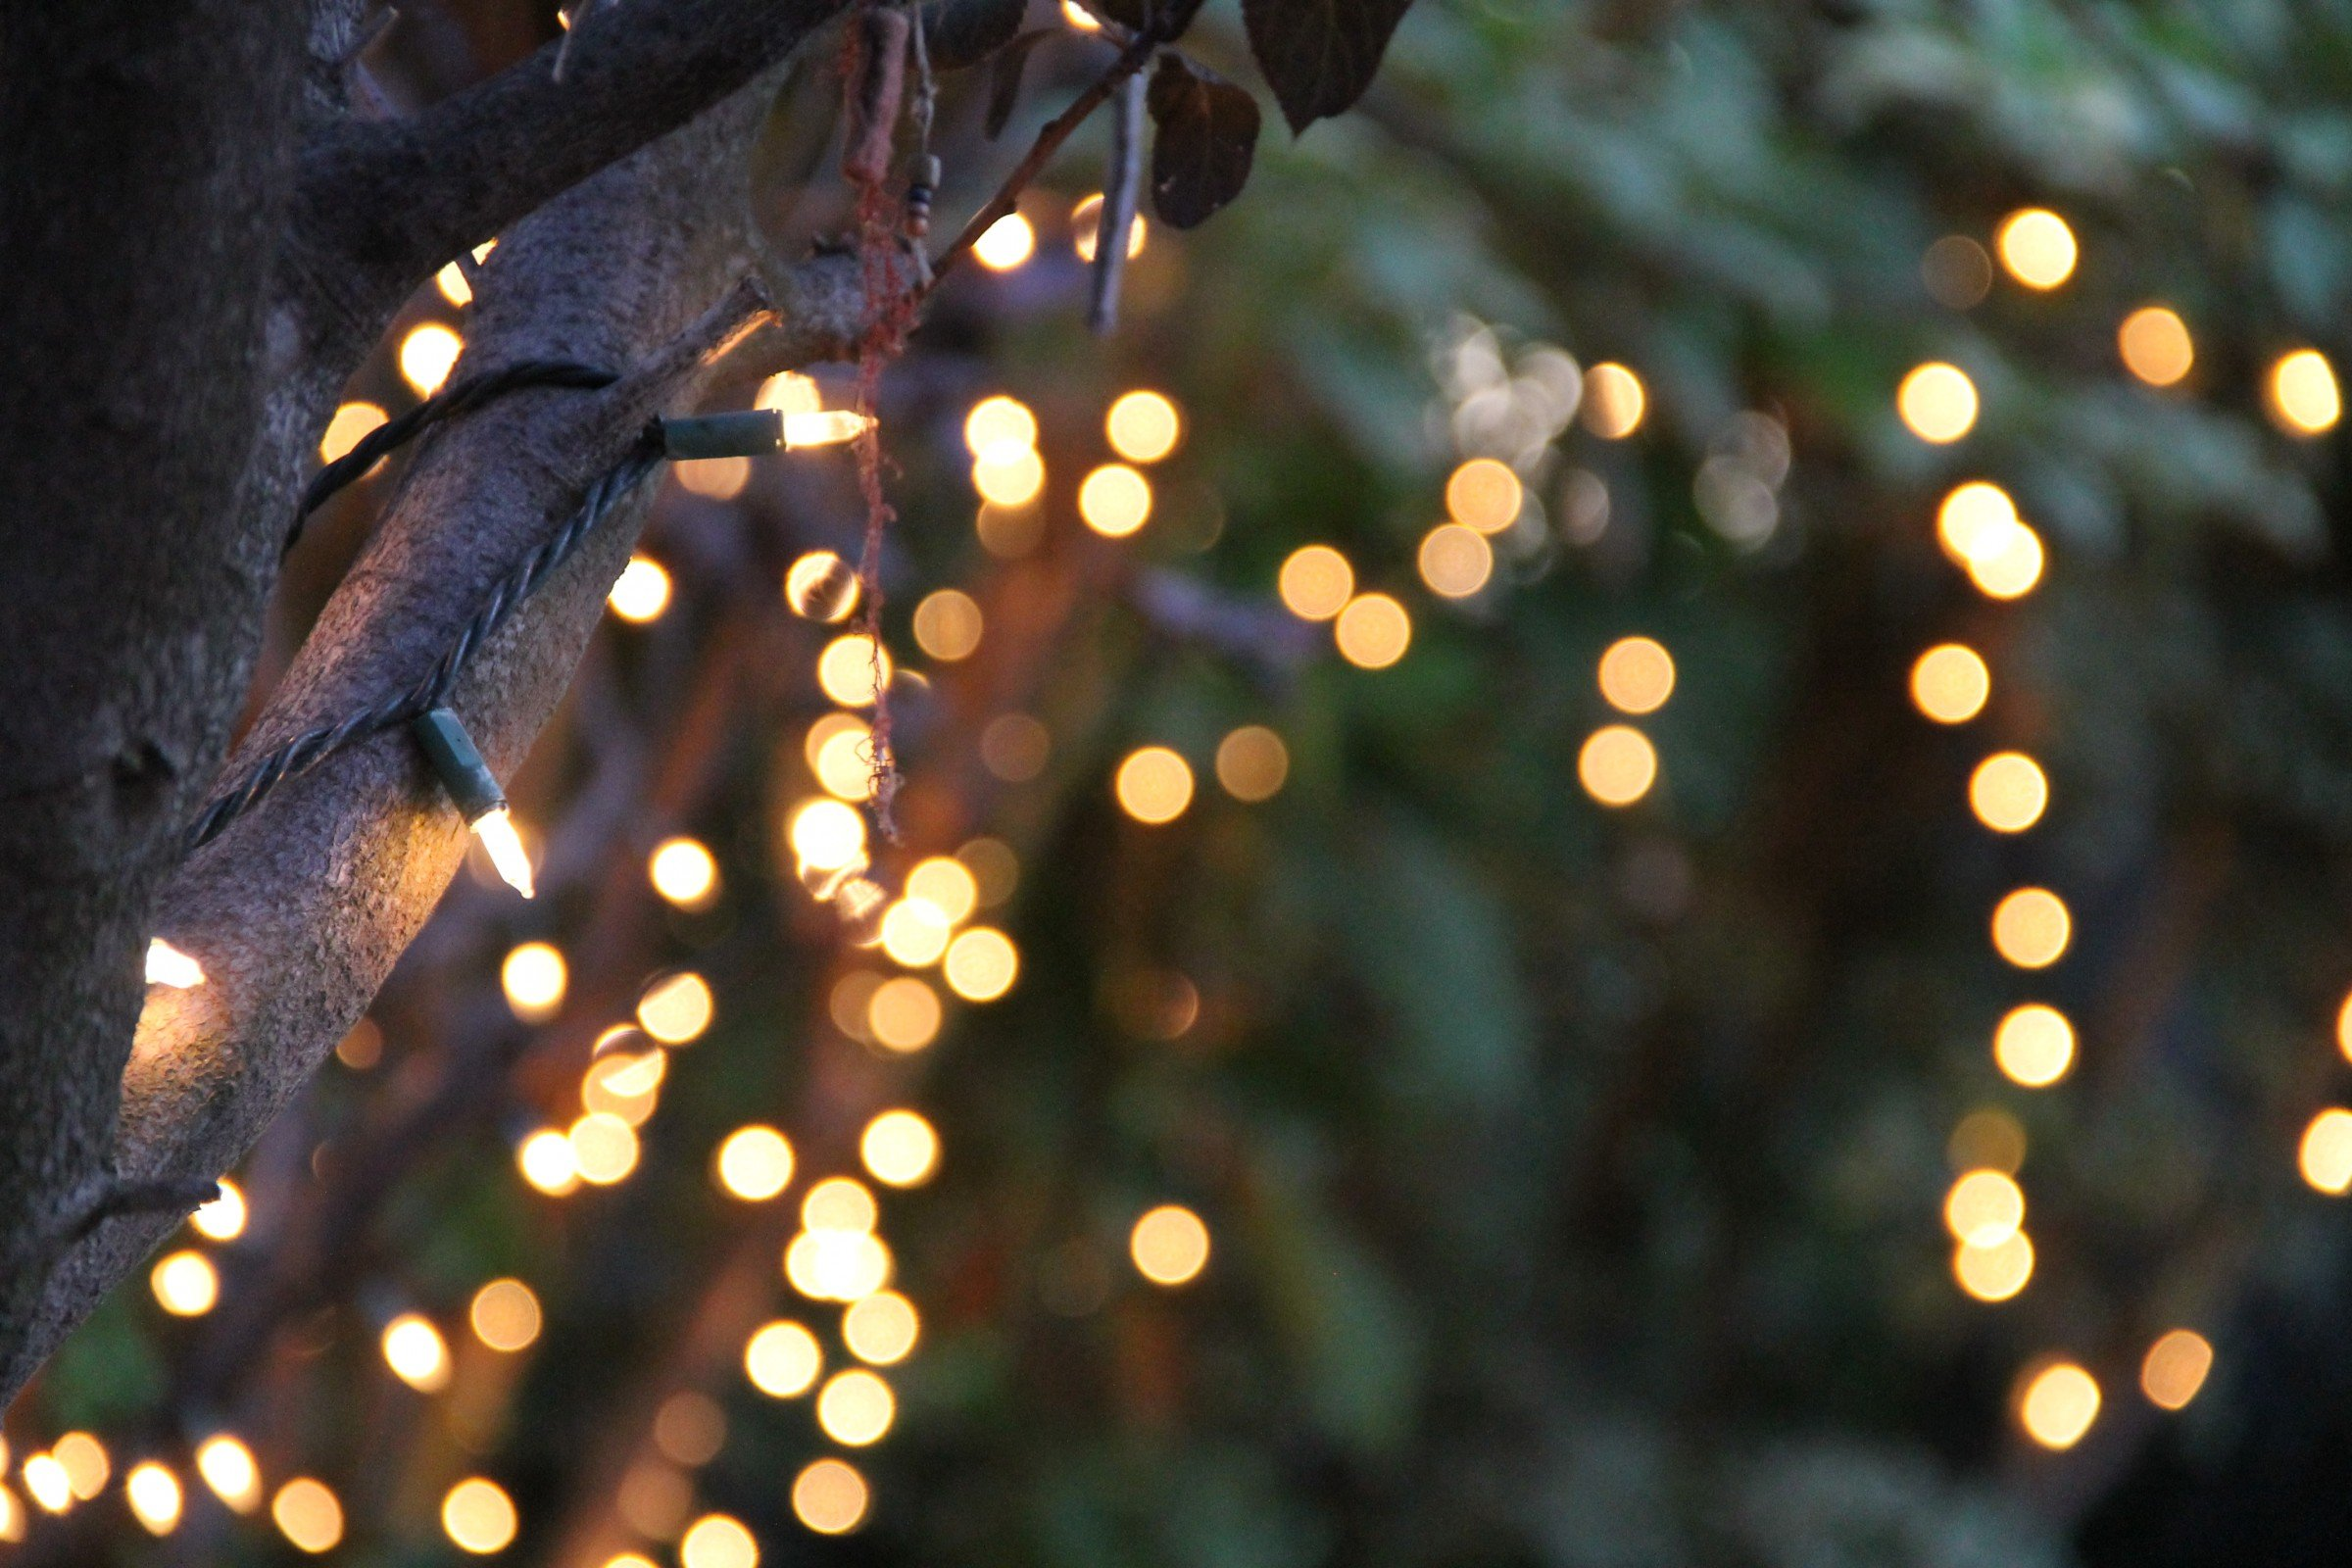 String Lights On Tree Branches : Bokeh of String Lights on Tree Good Stock Photos